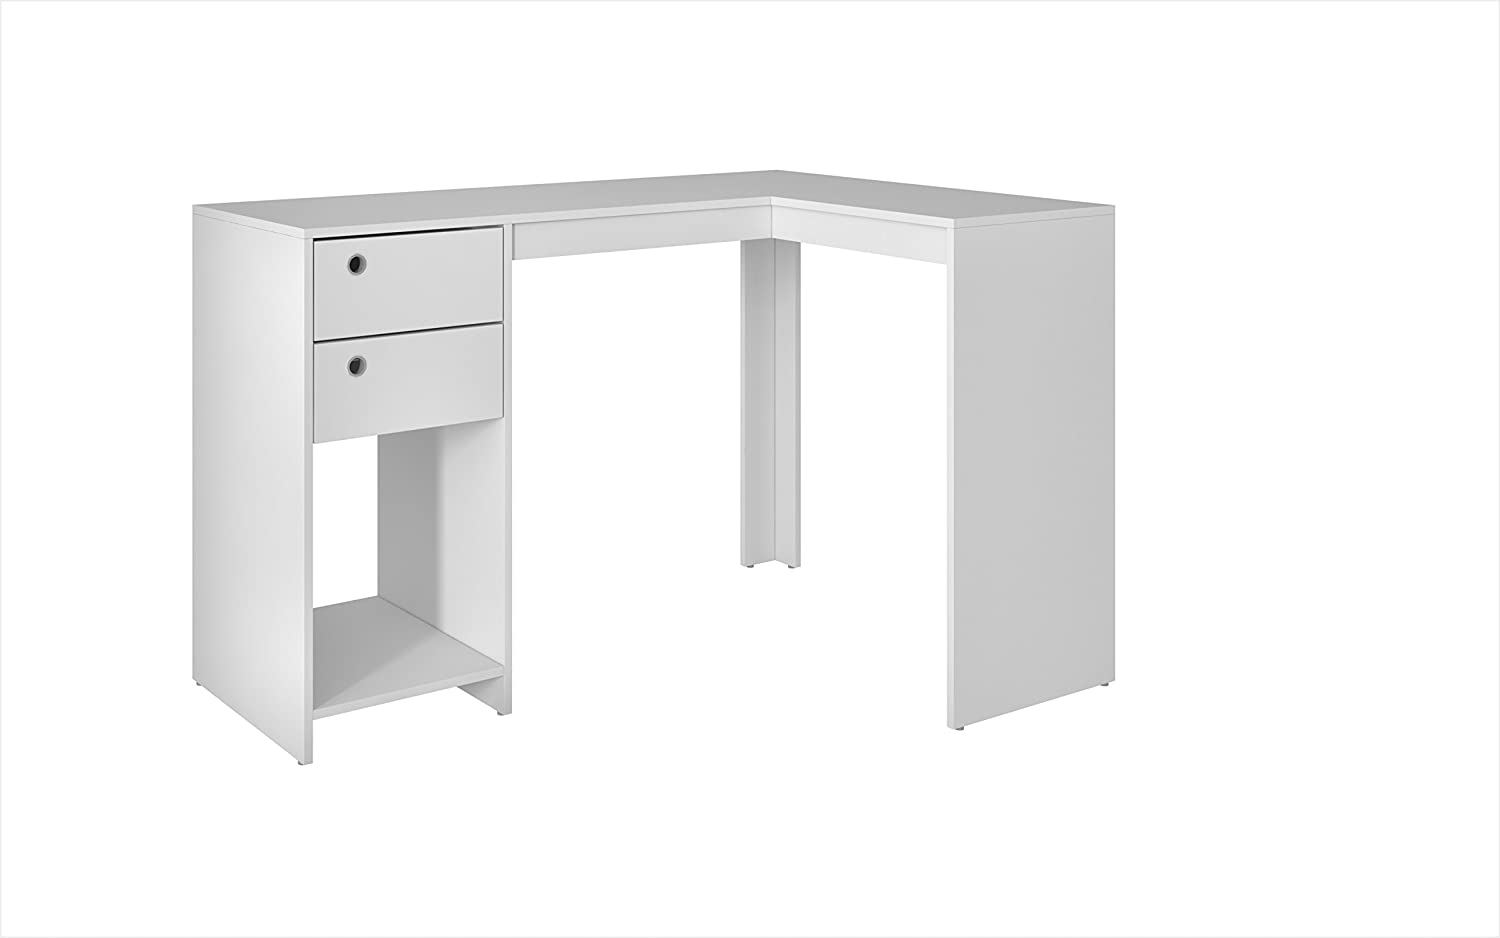 Manhattan Comfort Accentuations by Modest Palermo Classic  L  Shaped Desk with 2 Drawers and 1 Cubby in White - 41AMC6